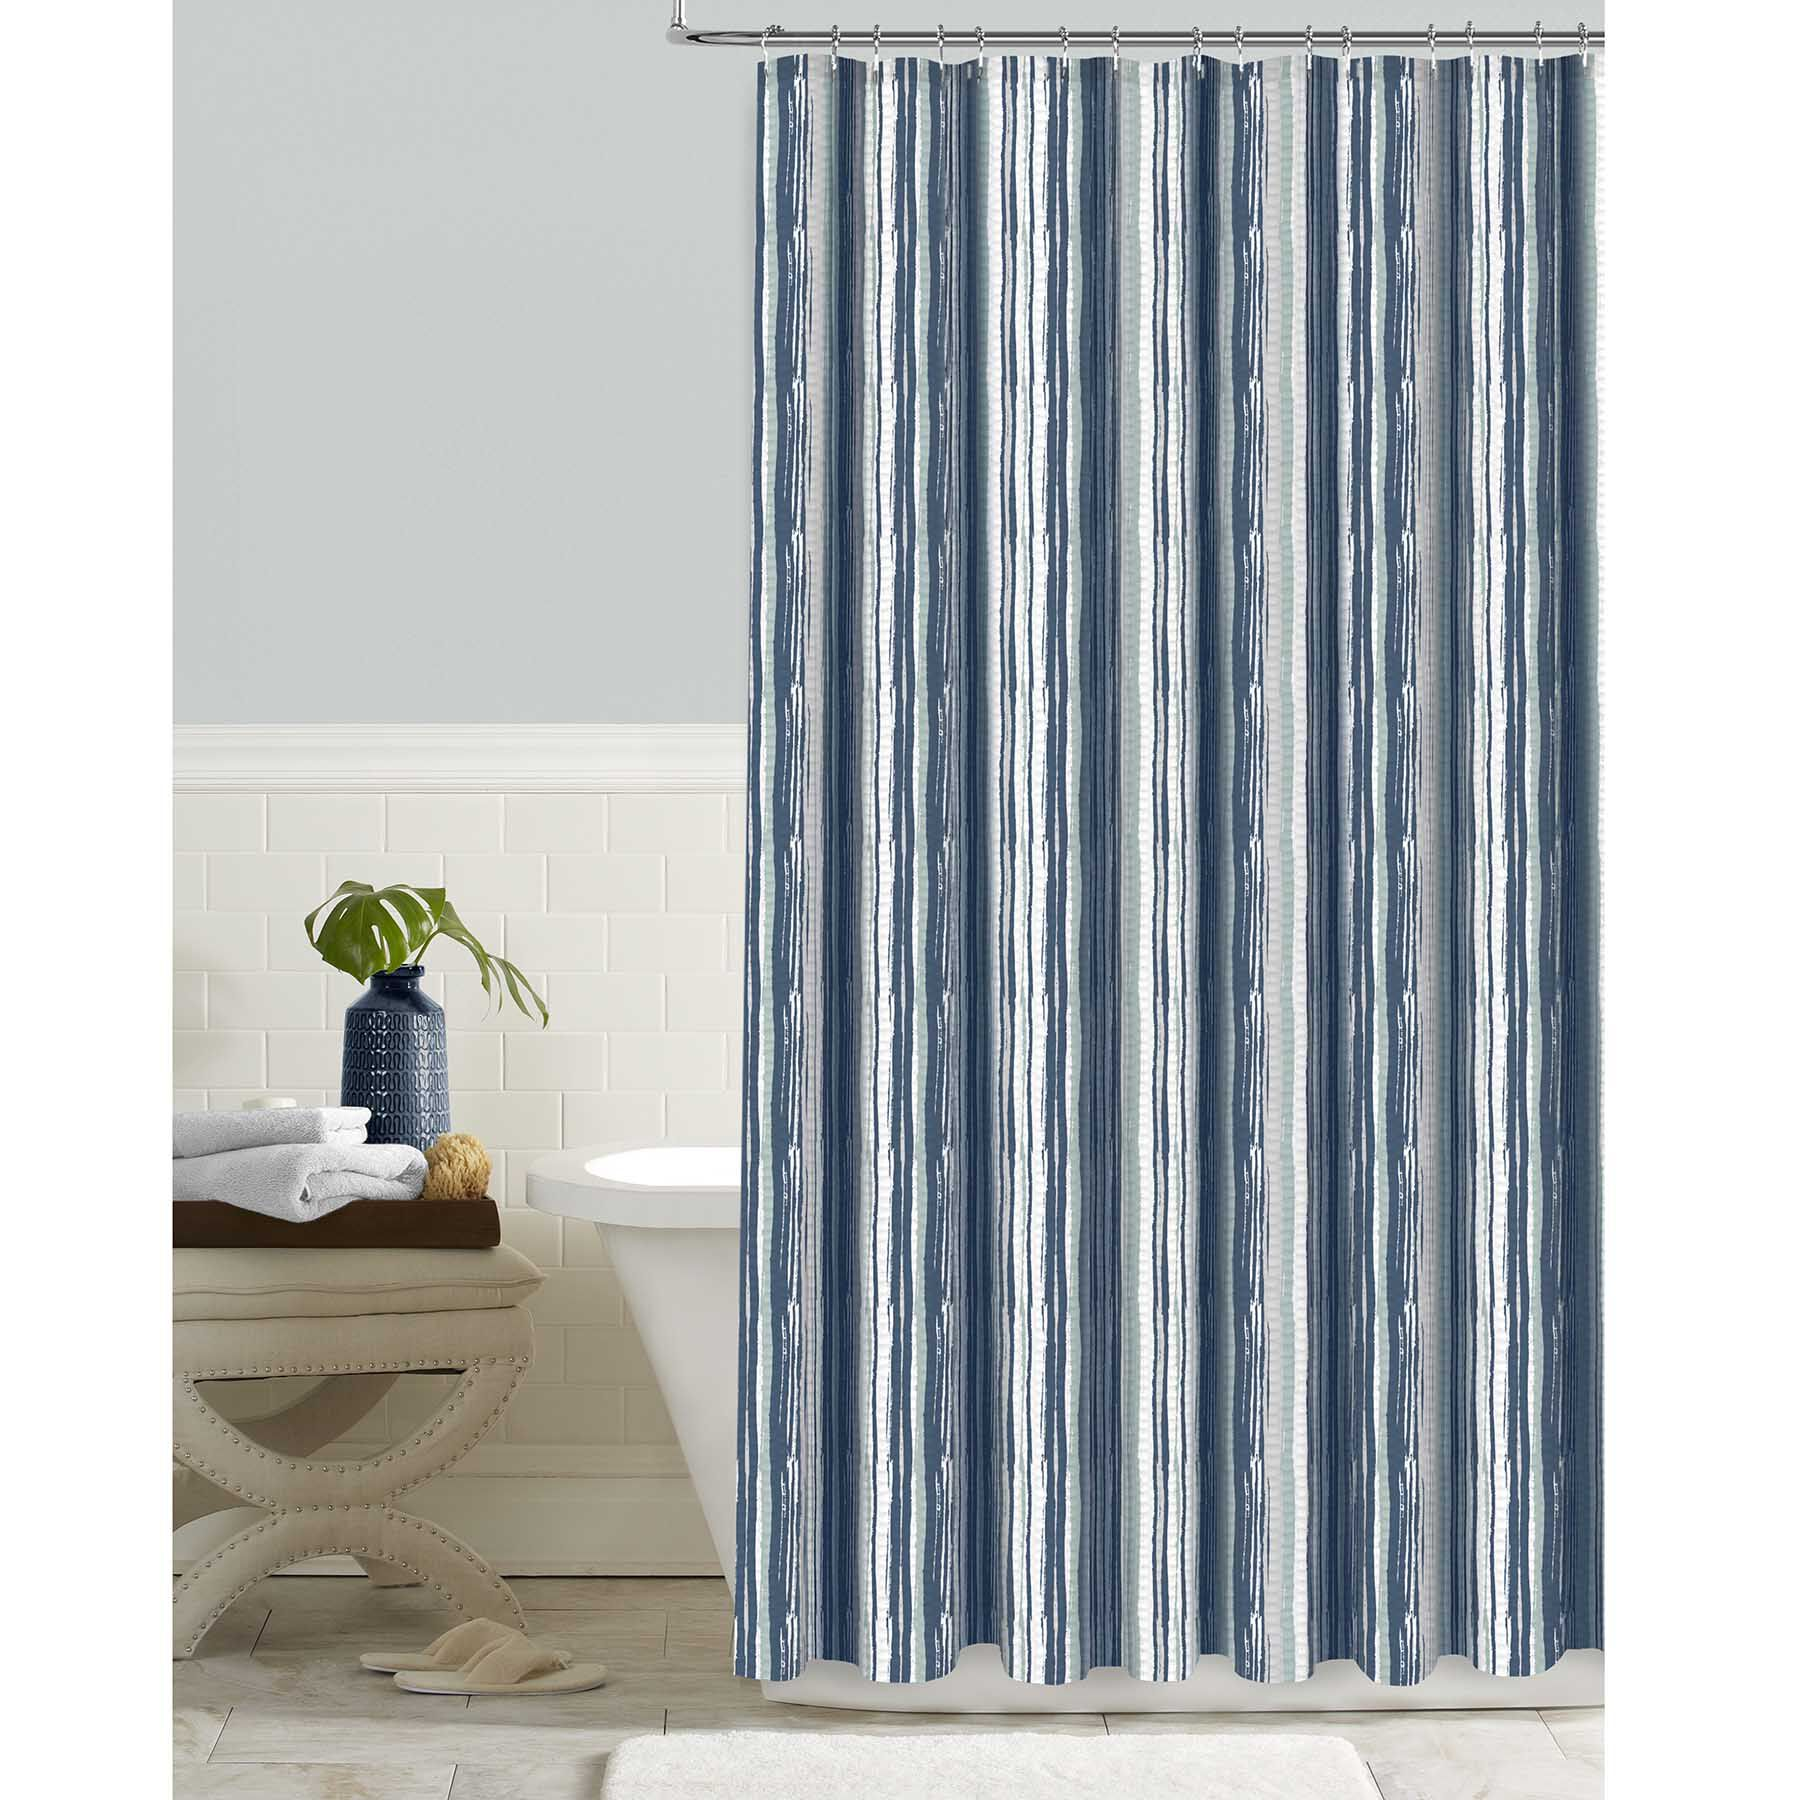 Blue Indigo Electric Striped Shower Curtain At Home